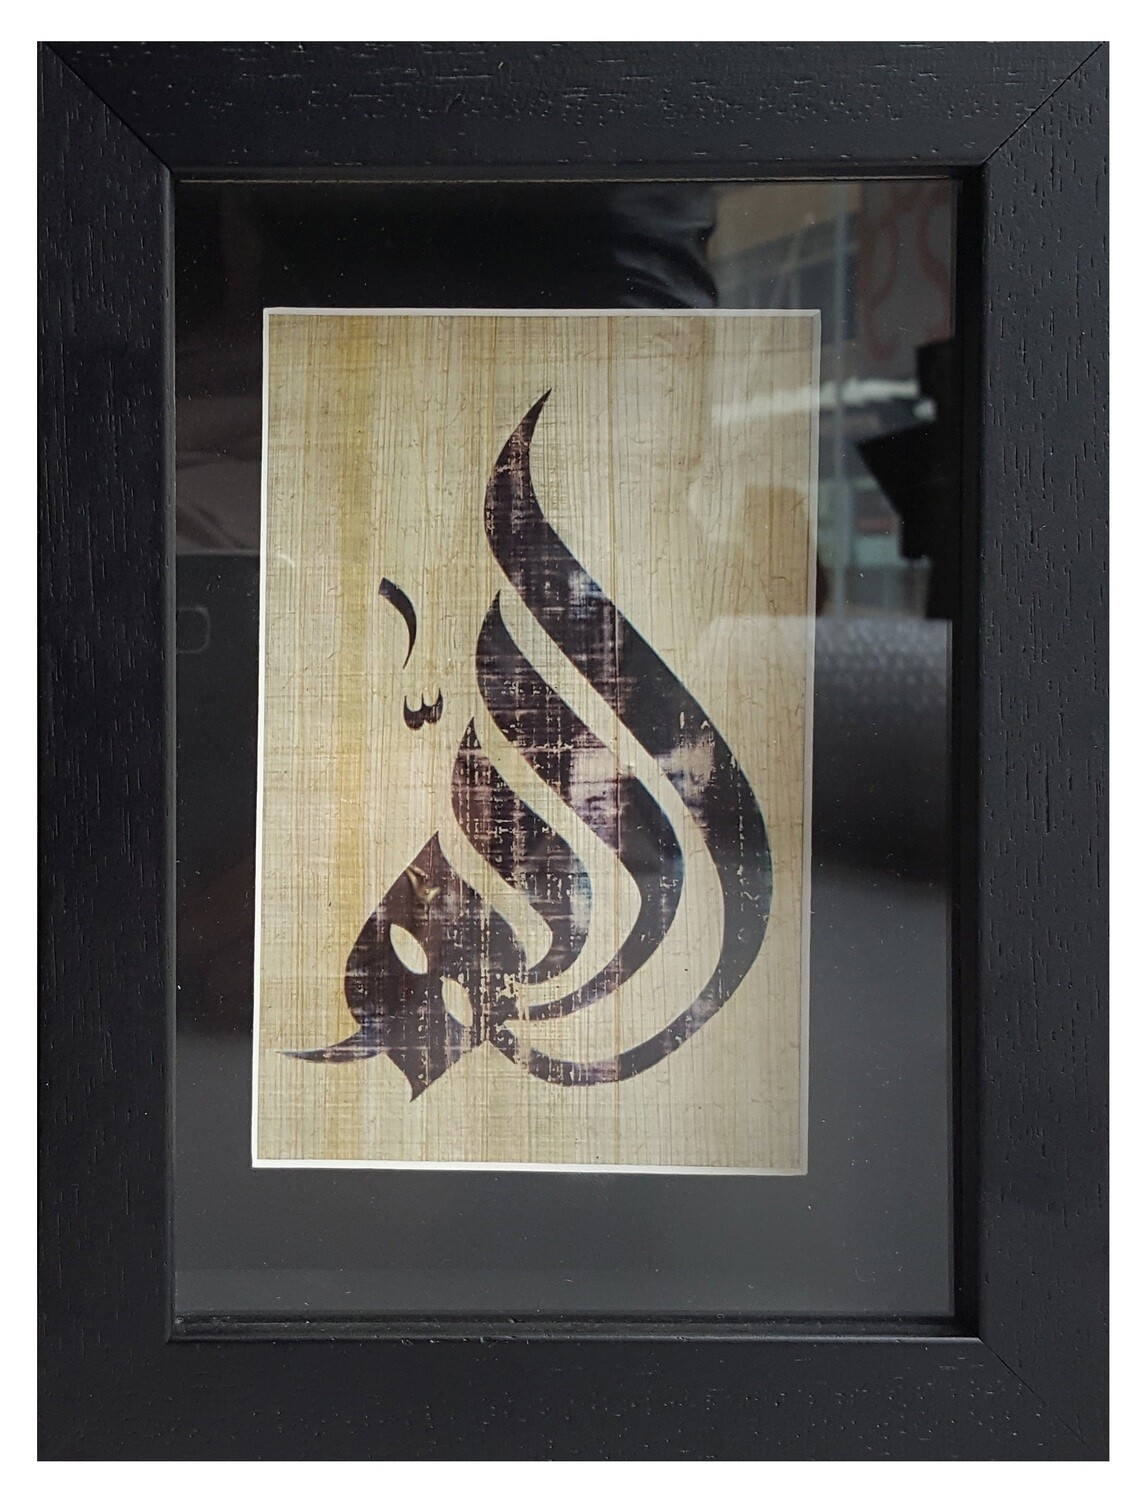 Allah Stylistic Calligraphy Design On Papyrus in Black Memory Box Frame